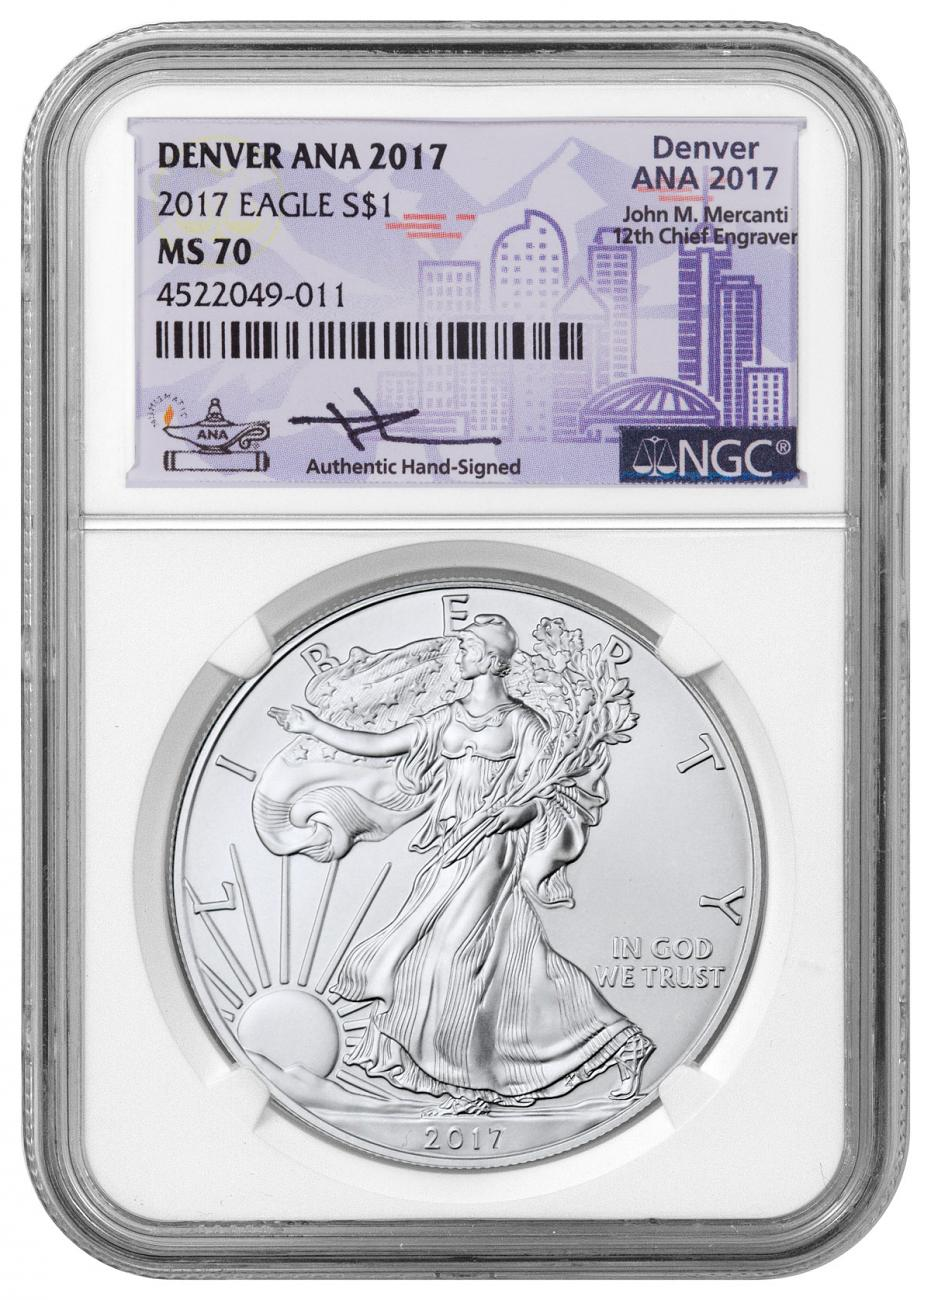 2017 American Silver Eagle Denver ANA 2017 NGC MS70 Exclusive Mercanti Signed ANA Label